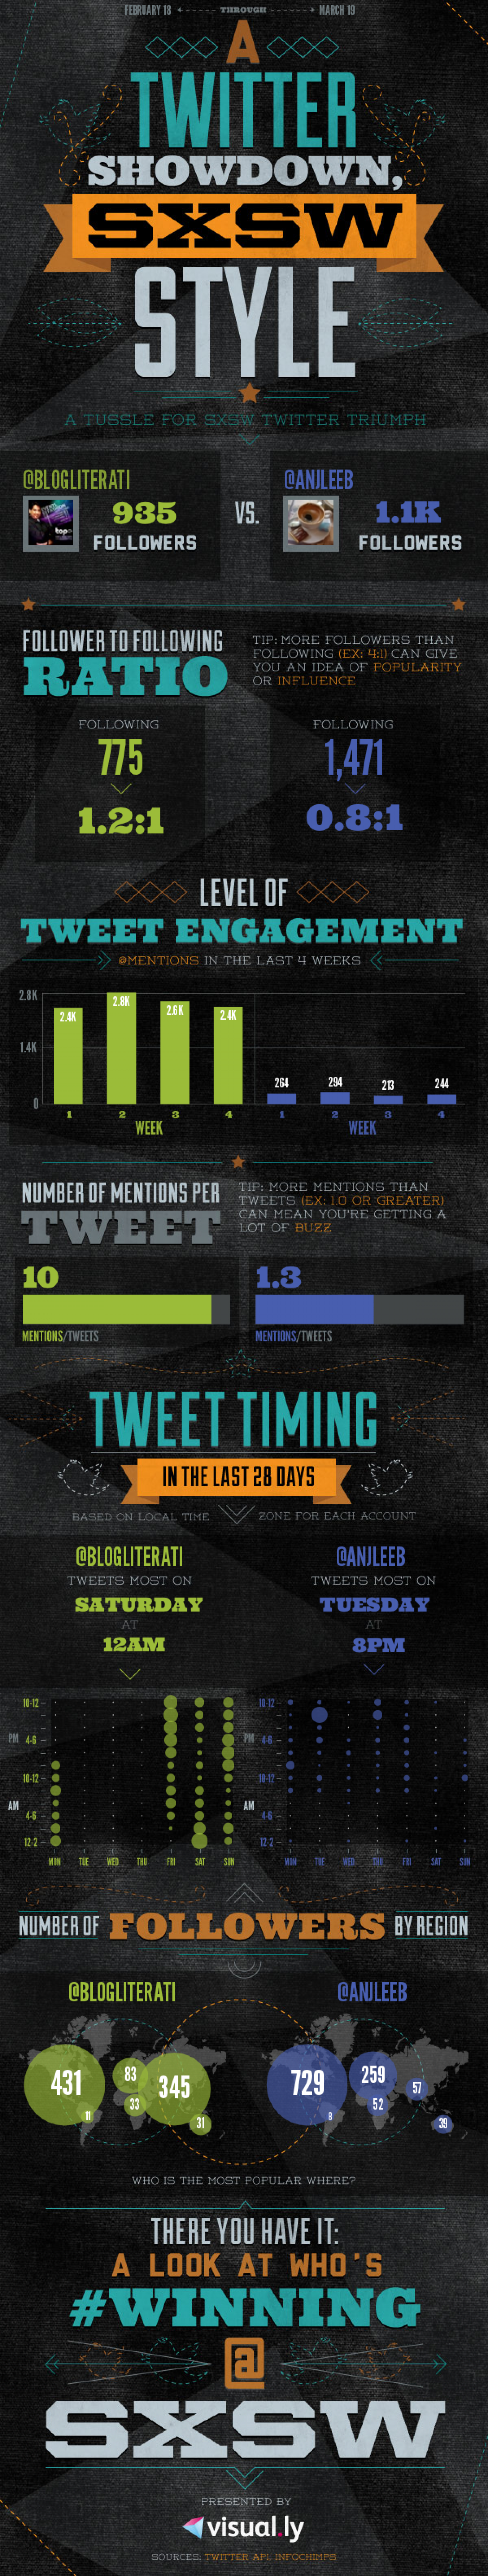 @blogliterati vs @anjleeb Infographic